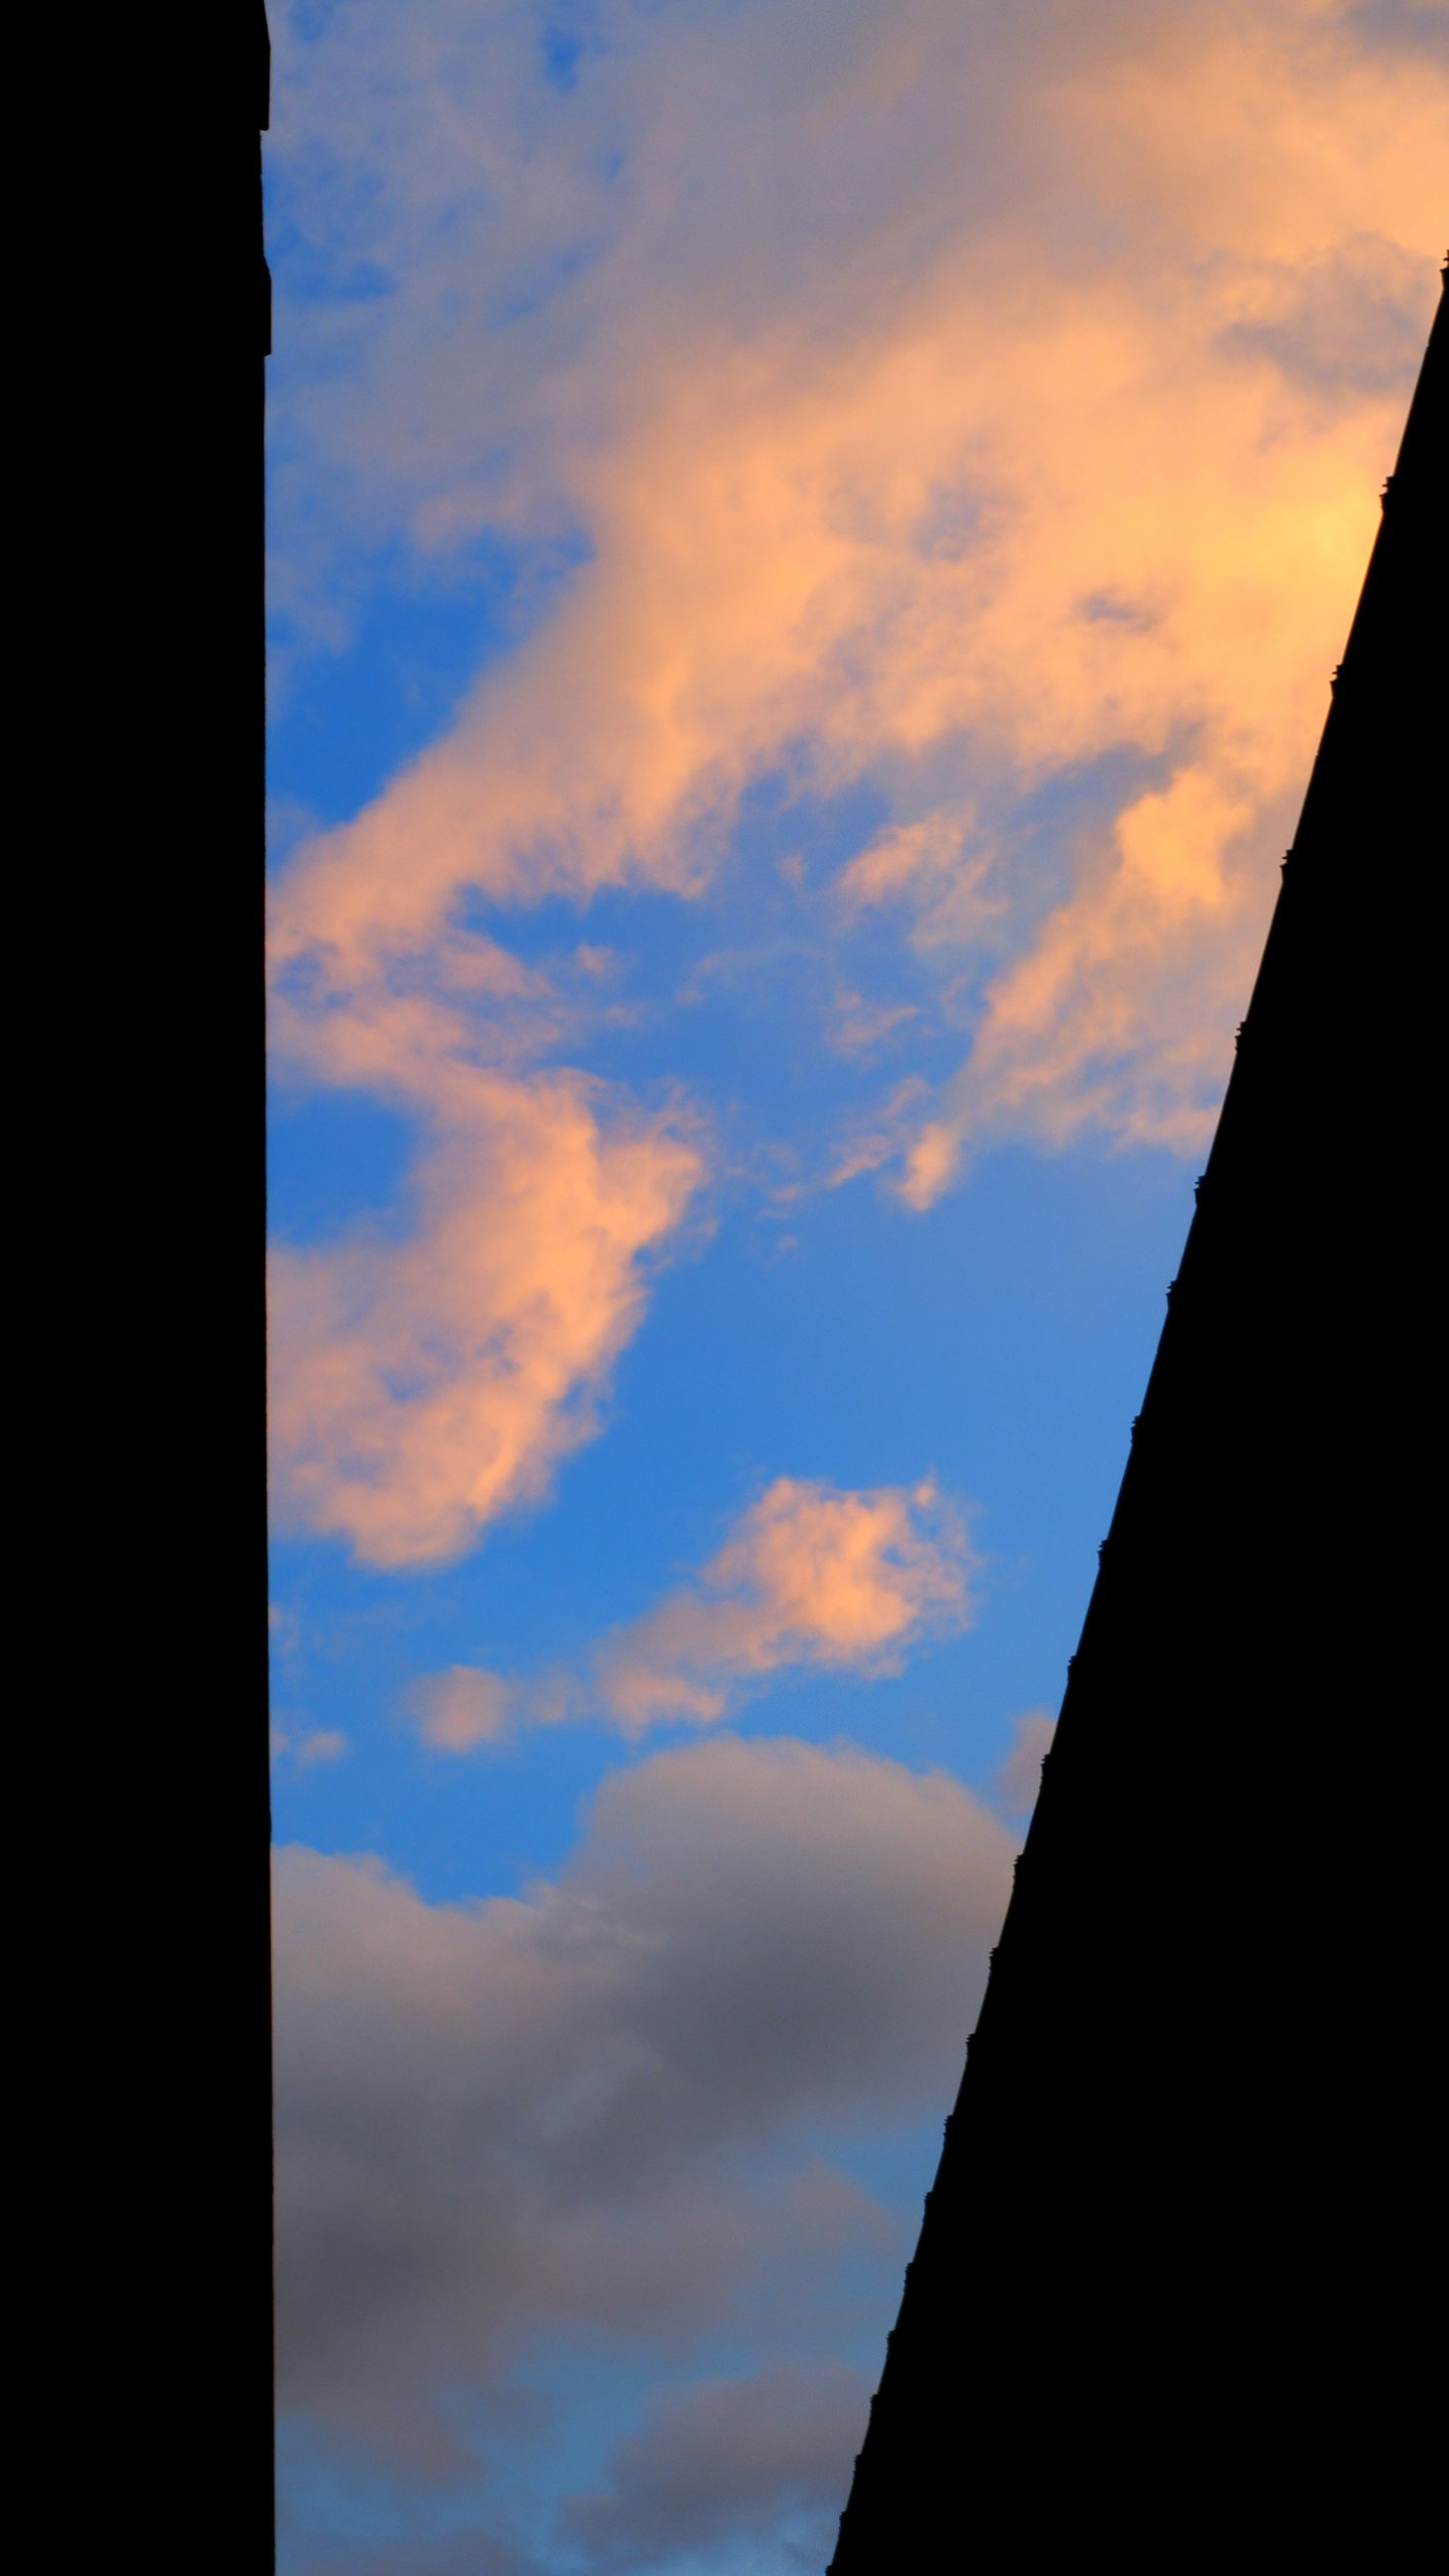 sky, cloud, blue, horizon, nature, no people, sunlight, architecture, sunset, silhouette, low angle view, built structure, reflection, building exterior, outdoors, dusk, beauty in nature, day